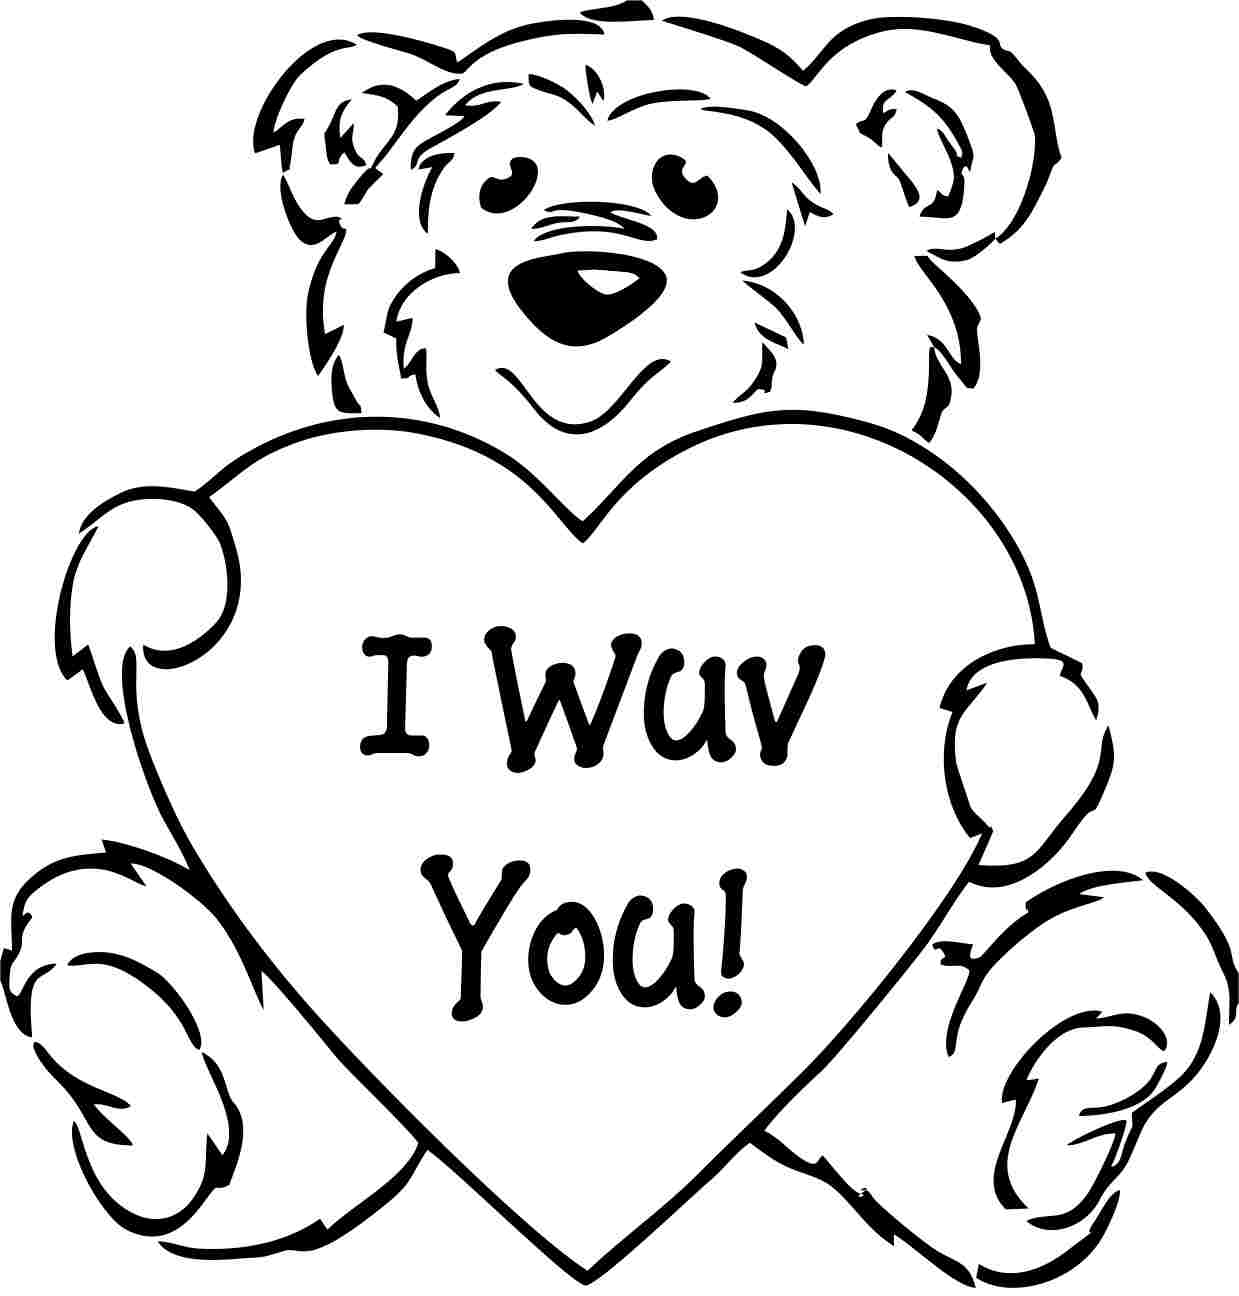 Valentines Day Coloring Pages in 2020 | Valentine coloring pages ... | 1296x1239